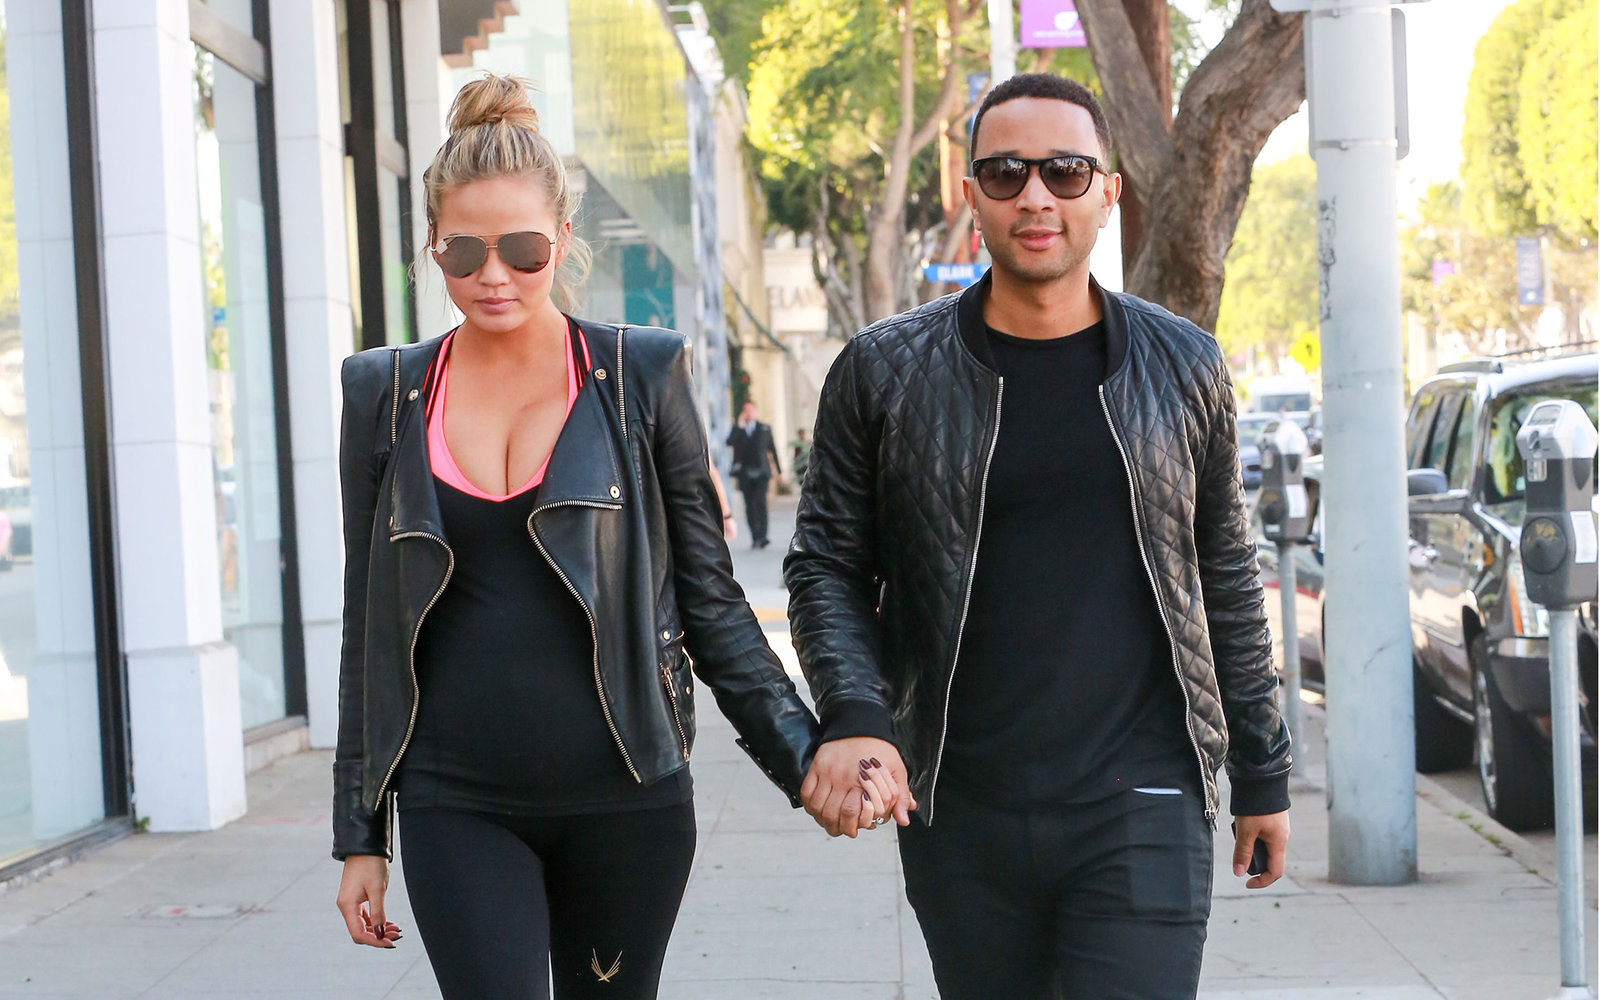 LOS ANGELES, CA - DECEMBER 04: Chrissy Teigen and John Legend are seen on December 04, 2015 in Los Angeles, California.  (Photo by Bauer-Griffin/GC Images)